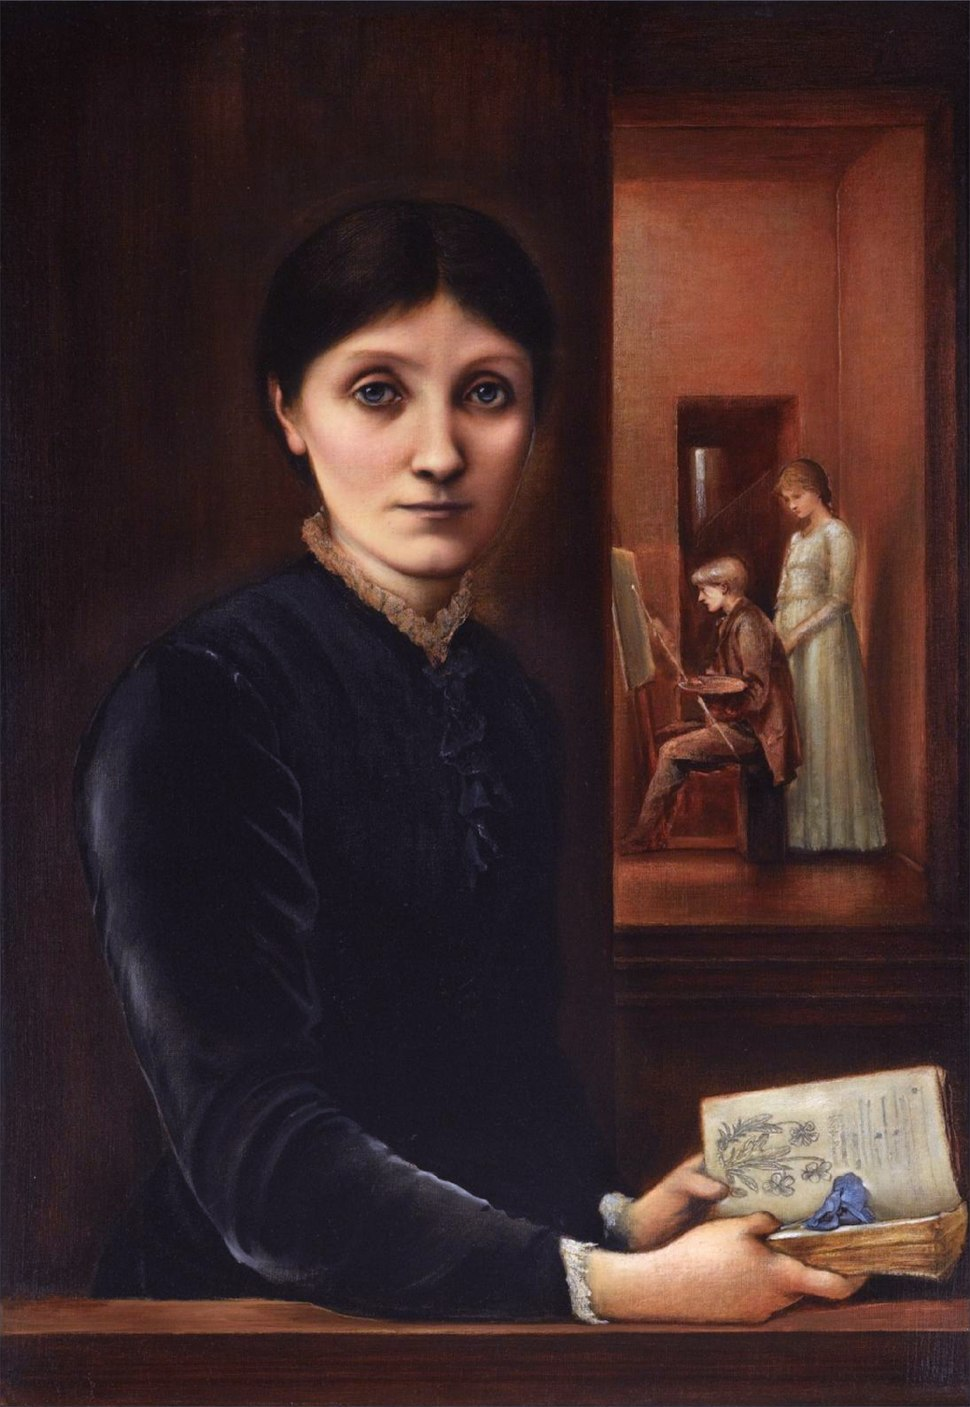 Georgiana Burne-Jones by Edward Coley Burne-Jones